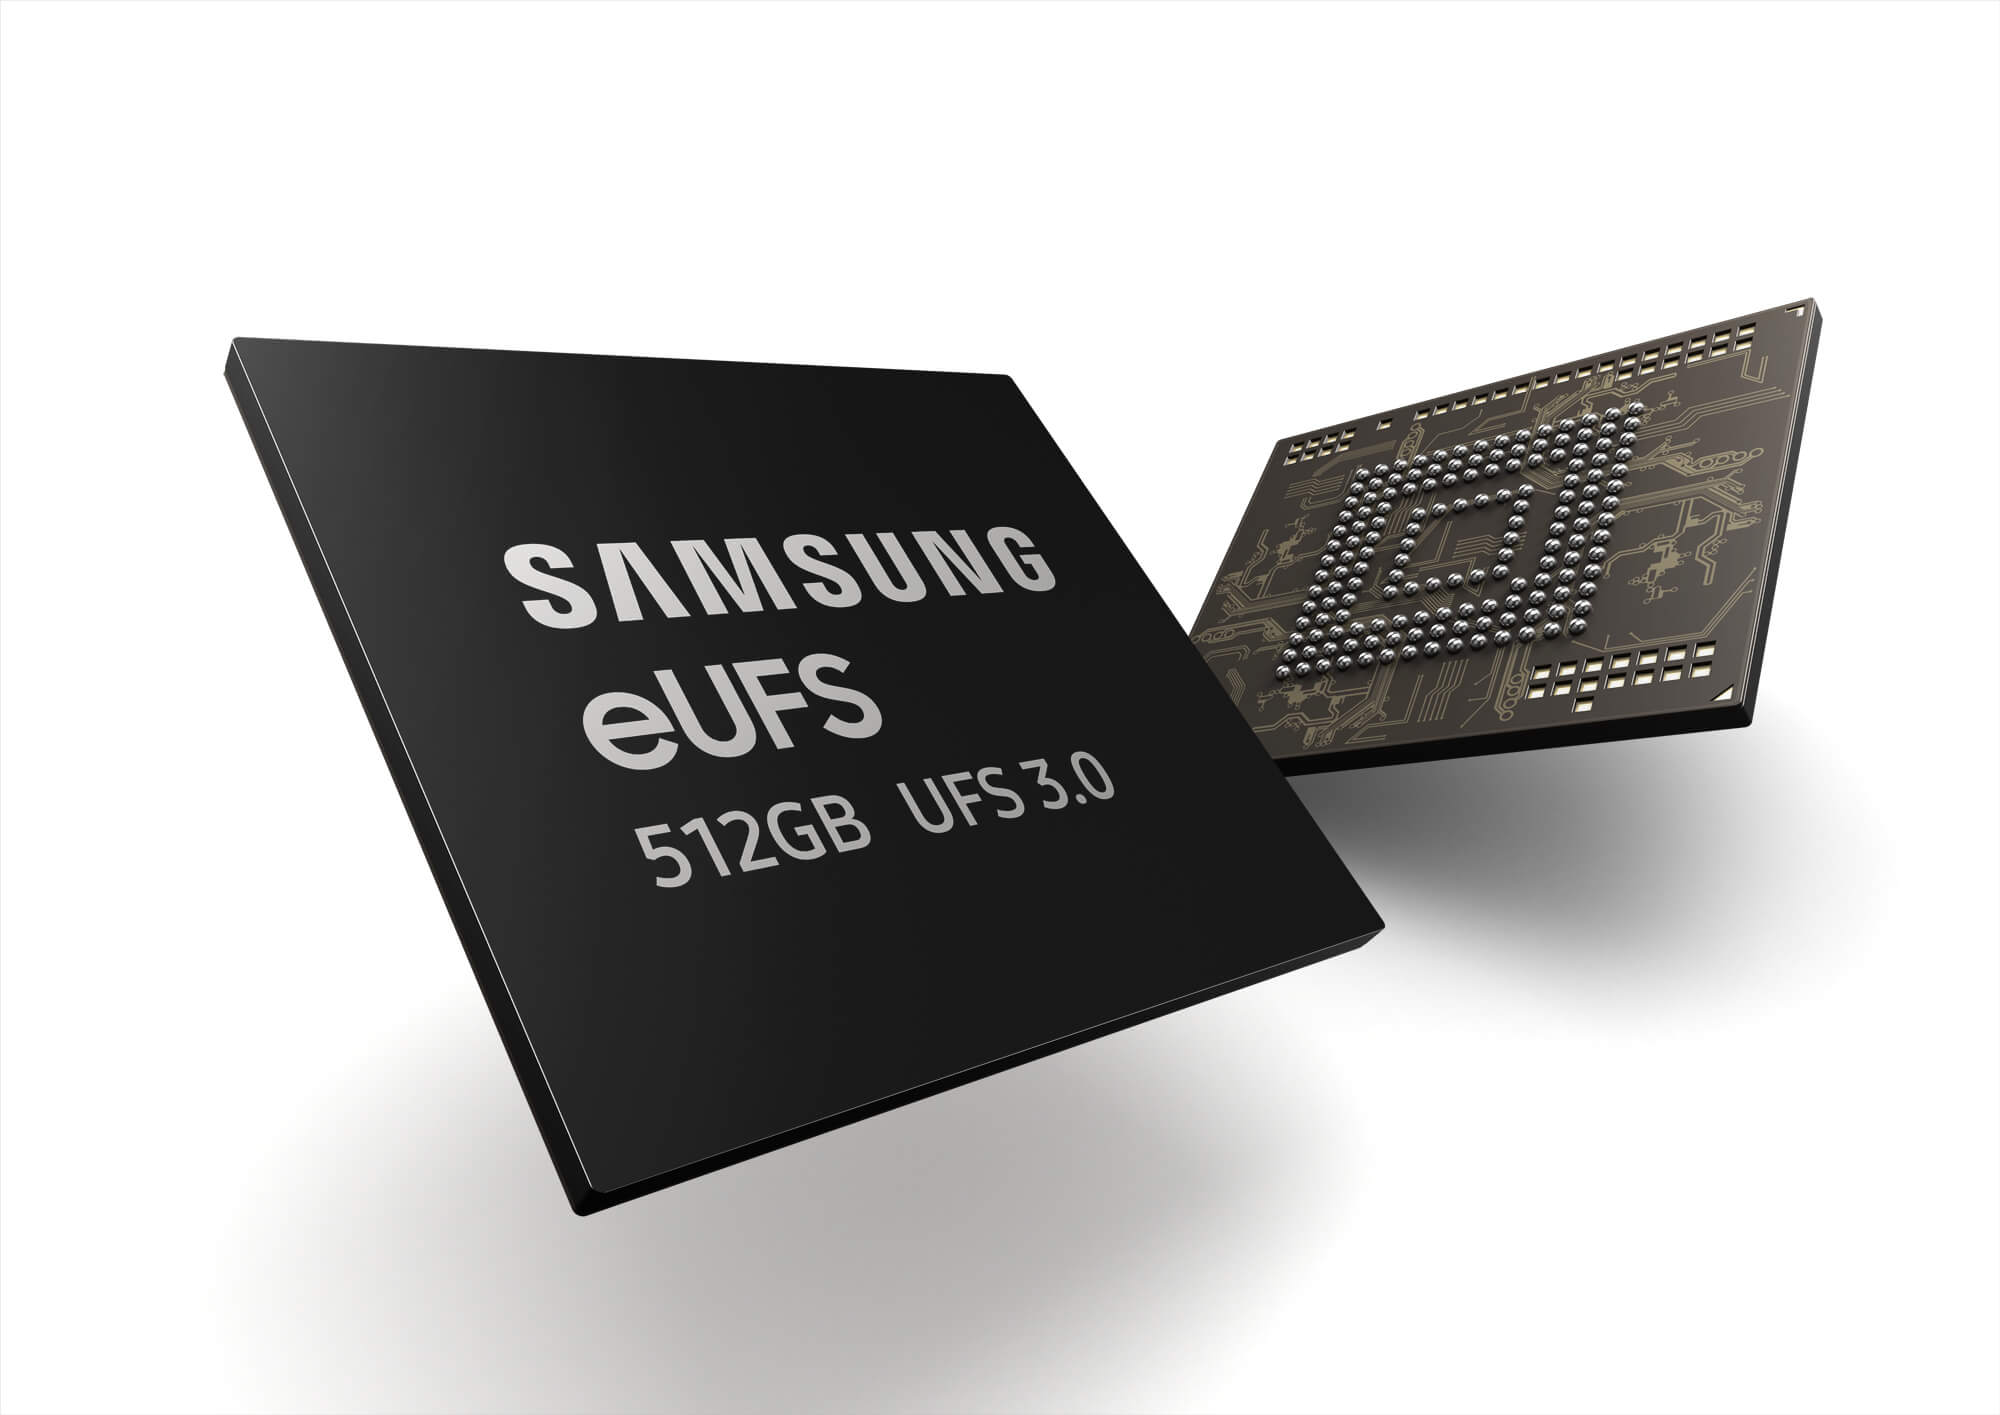 Samsung's EUFS 3.0 Storage is Twice as Fast and will Scale up to 1TB